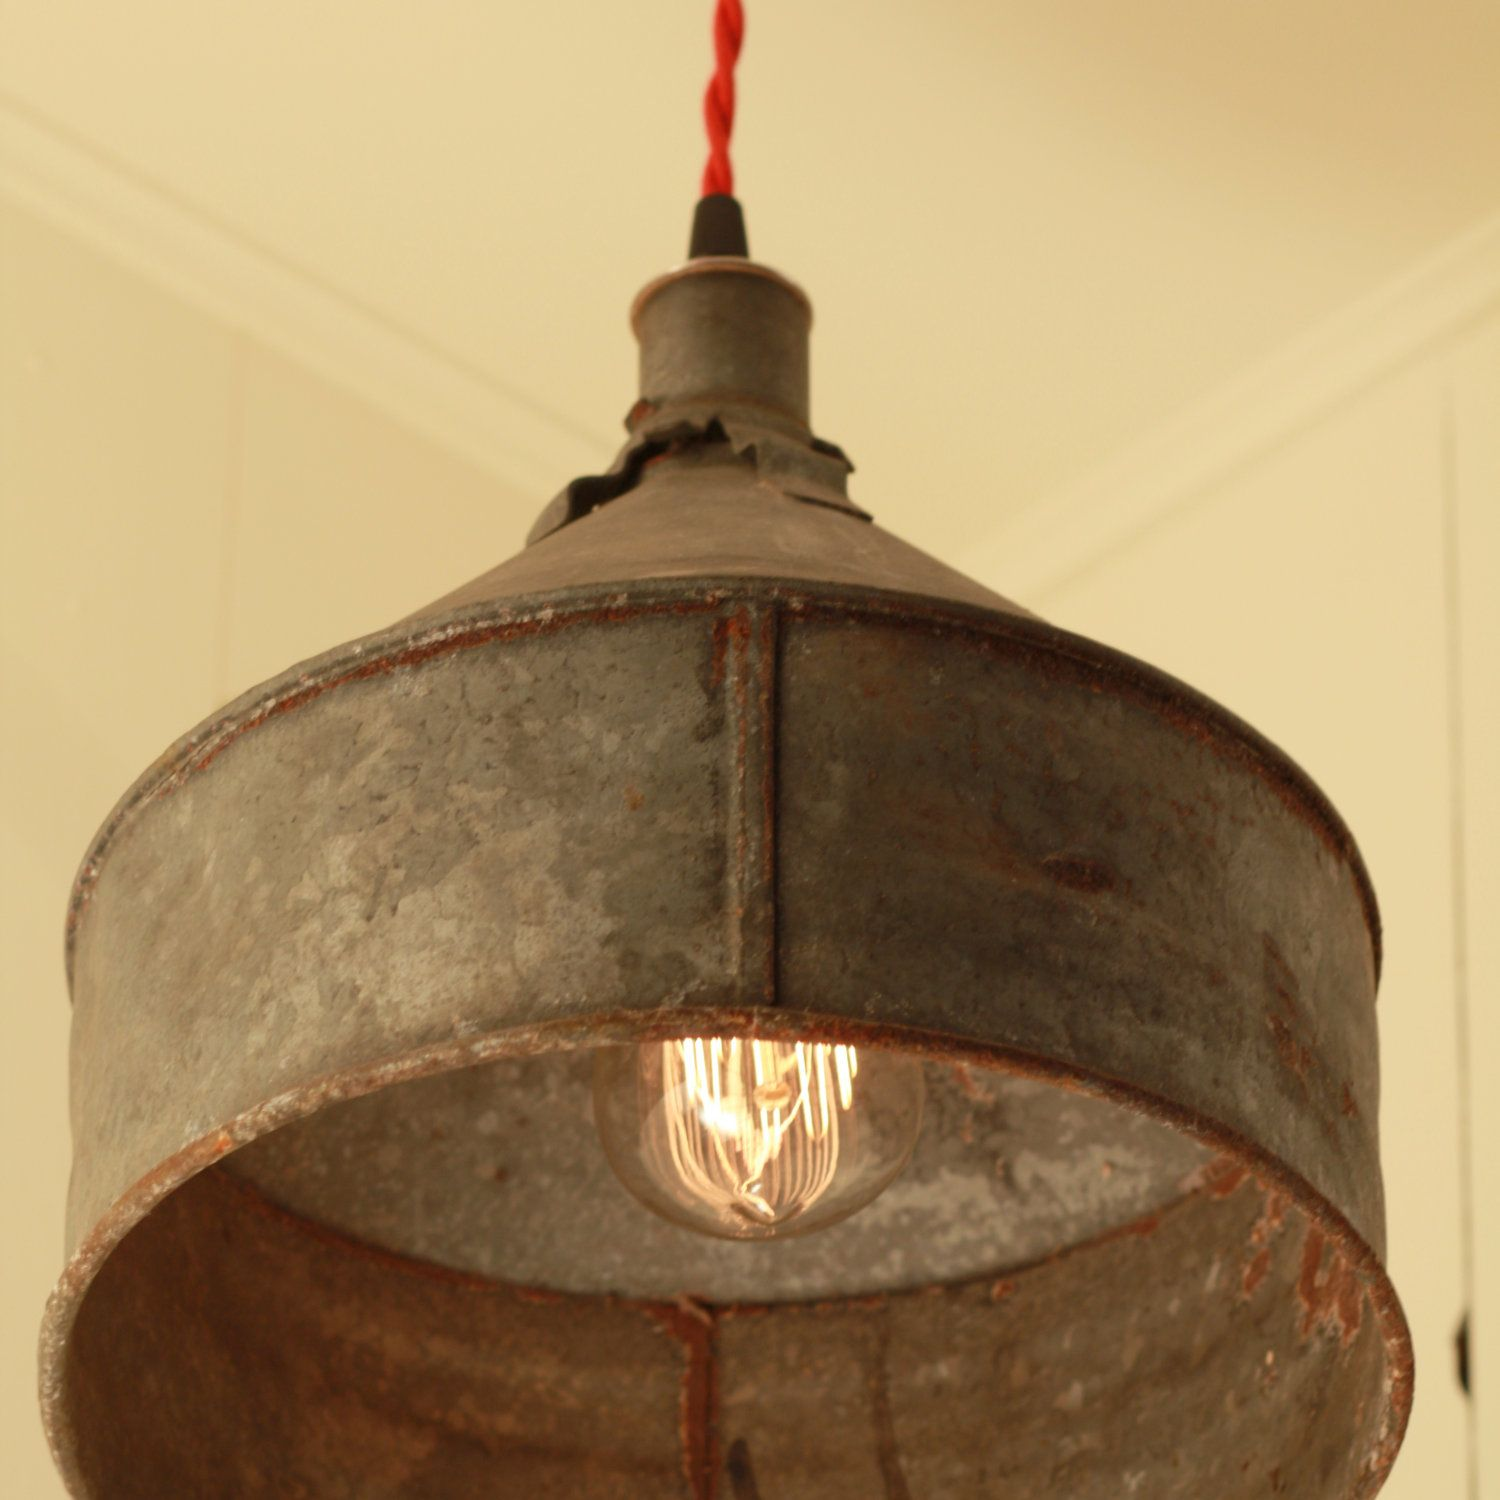 rustic pendant lighting kitchen RESERVED for Jacquidowd Rustic Lighting with Vintage Rustic Funnel Shade Pendant